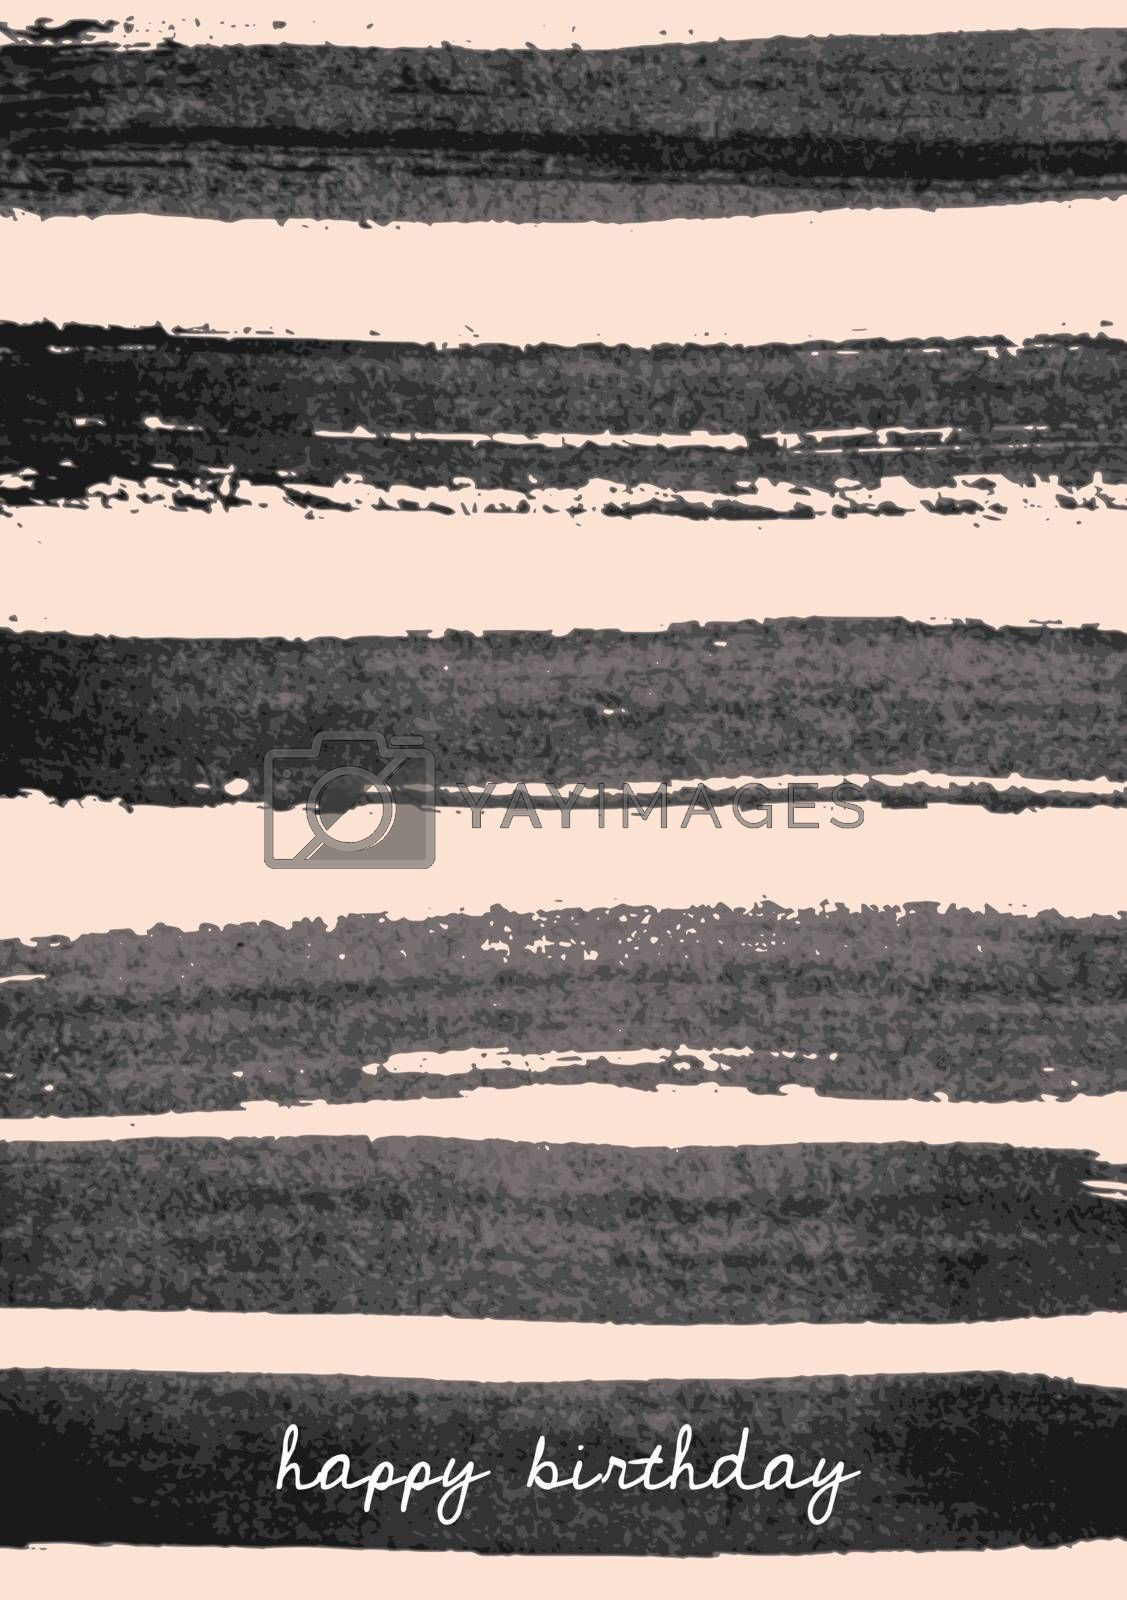 Hand drawn brush strokes birthday greeting card design. Horizontal paint stripes in black on blush pink background.